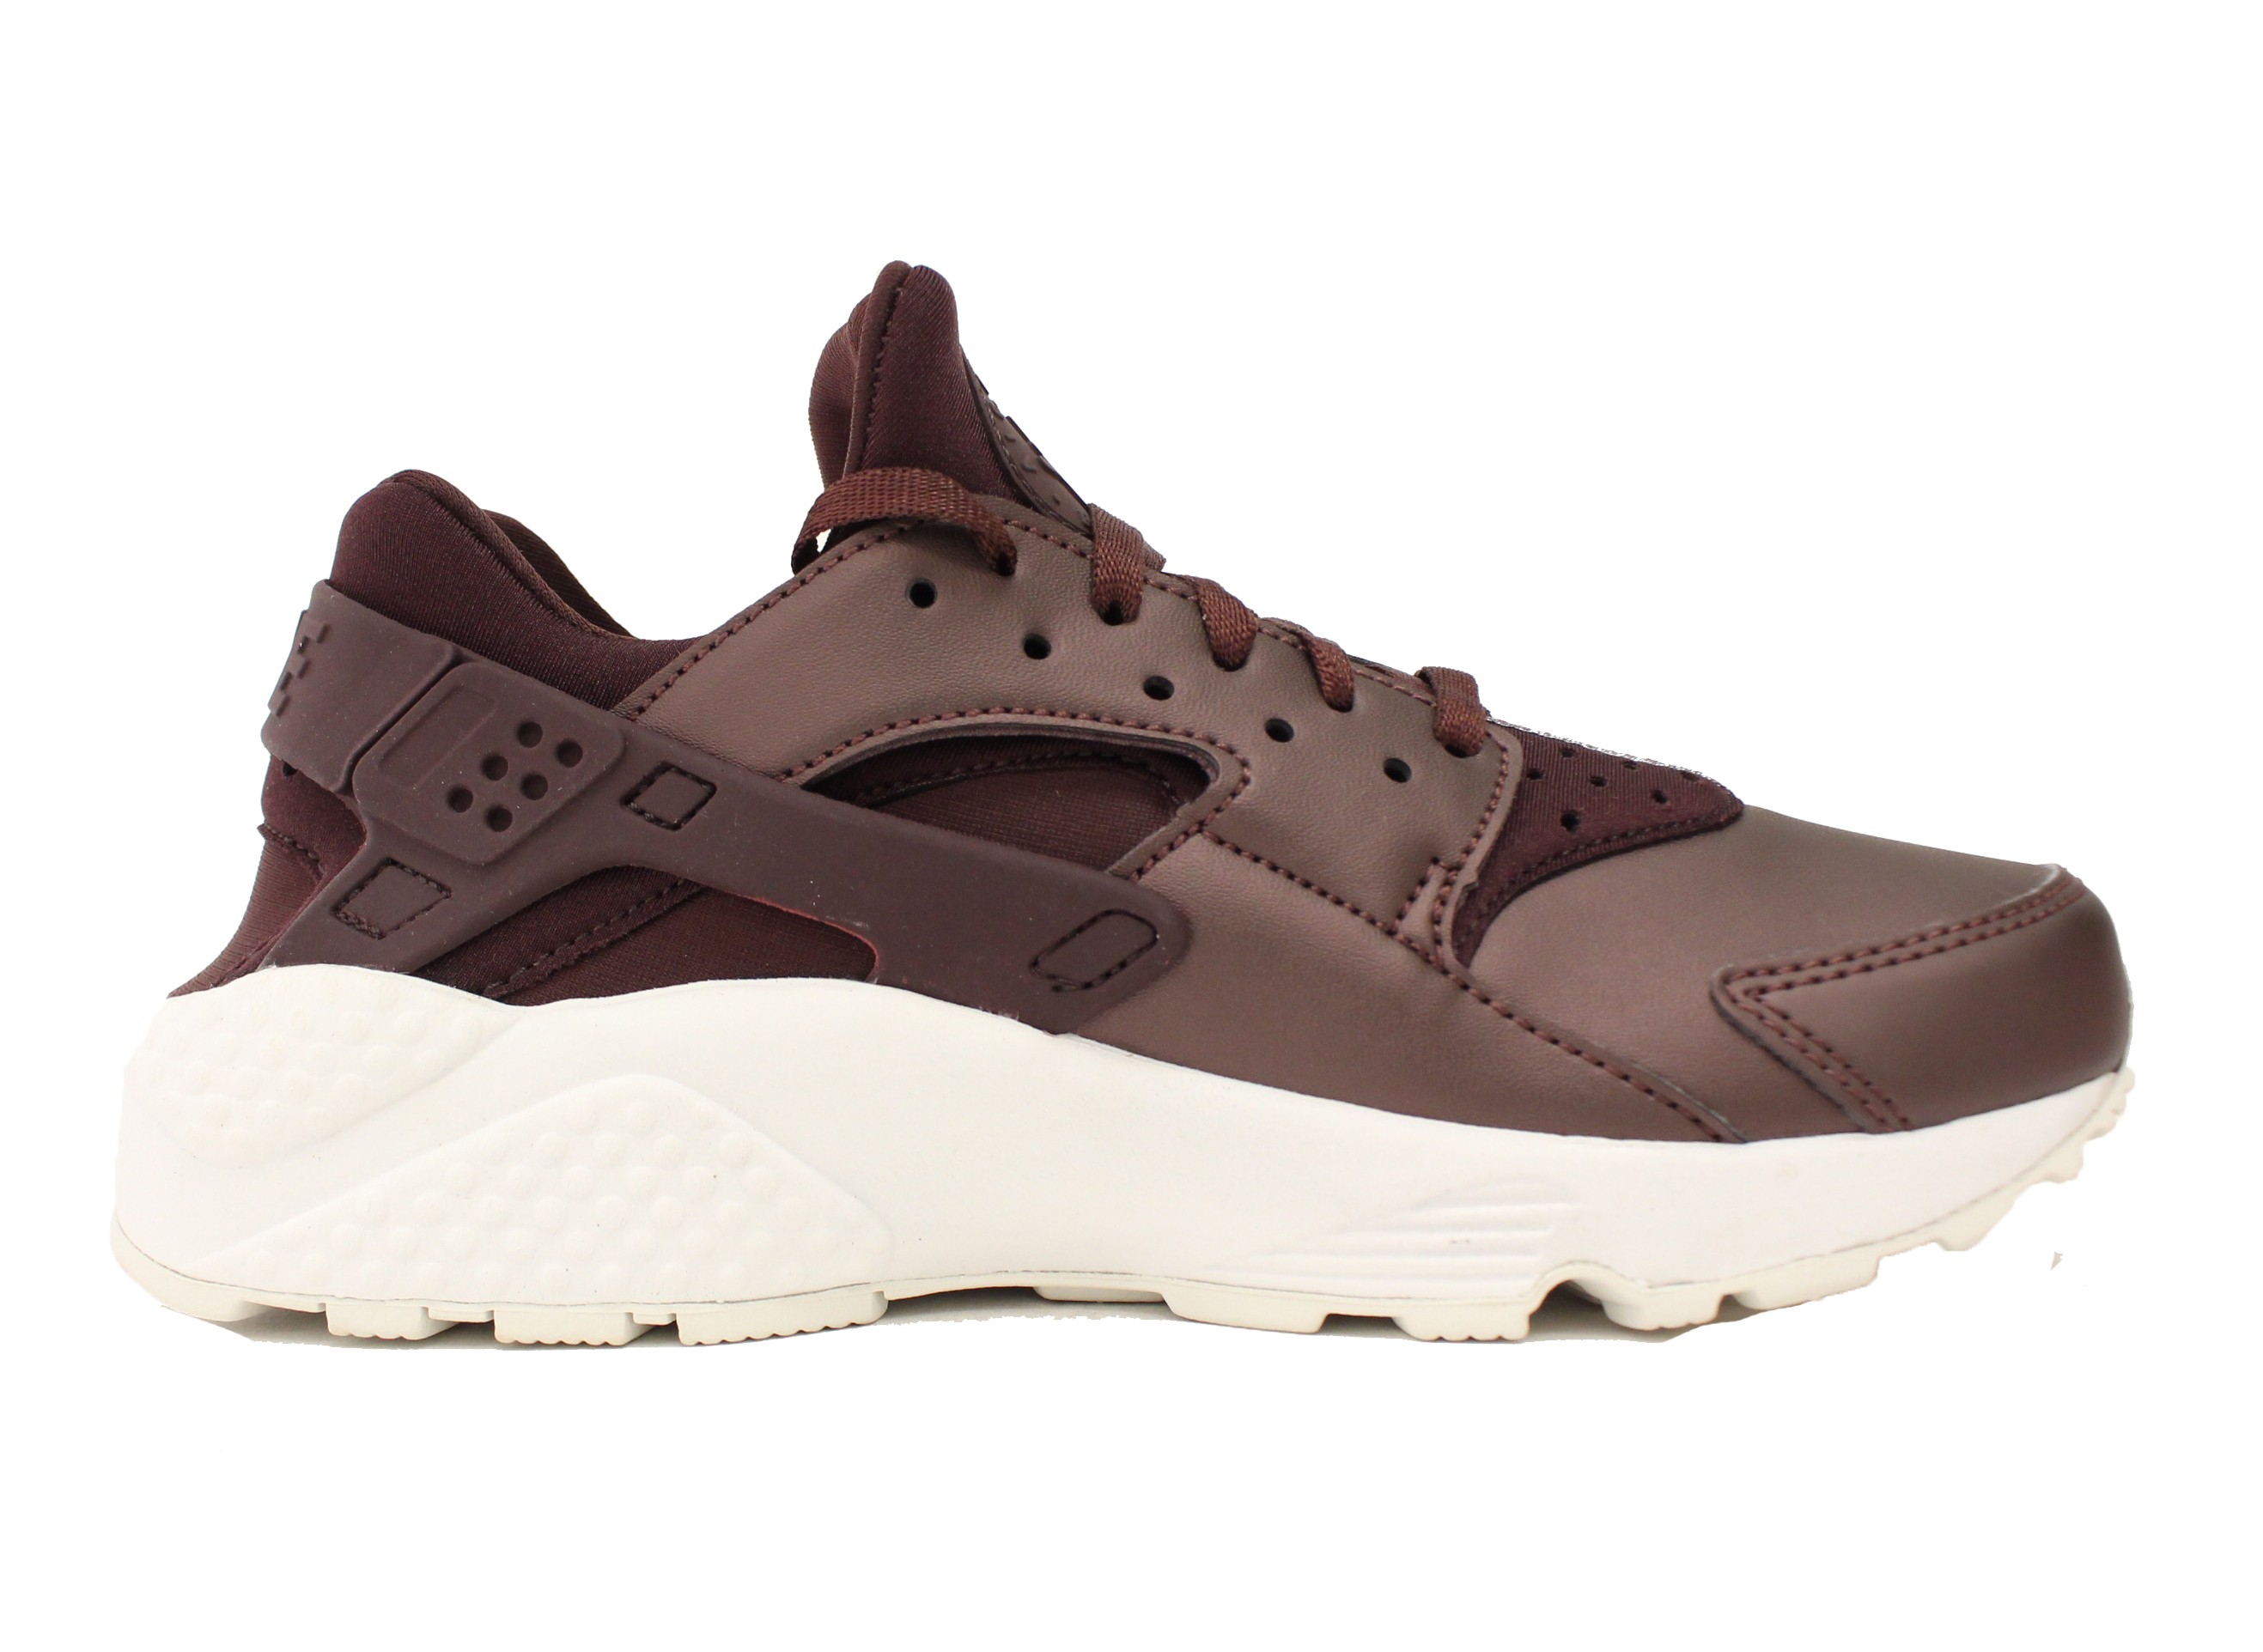 NIKE WOMENS AIR HUARACHE RUN MAHOGANY PREMIUM SZ 7.5 METALLIC MAHOGANY RUN WHITE AA0523 202 58075c